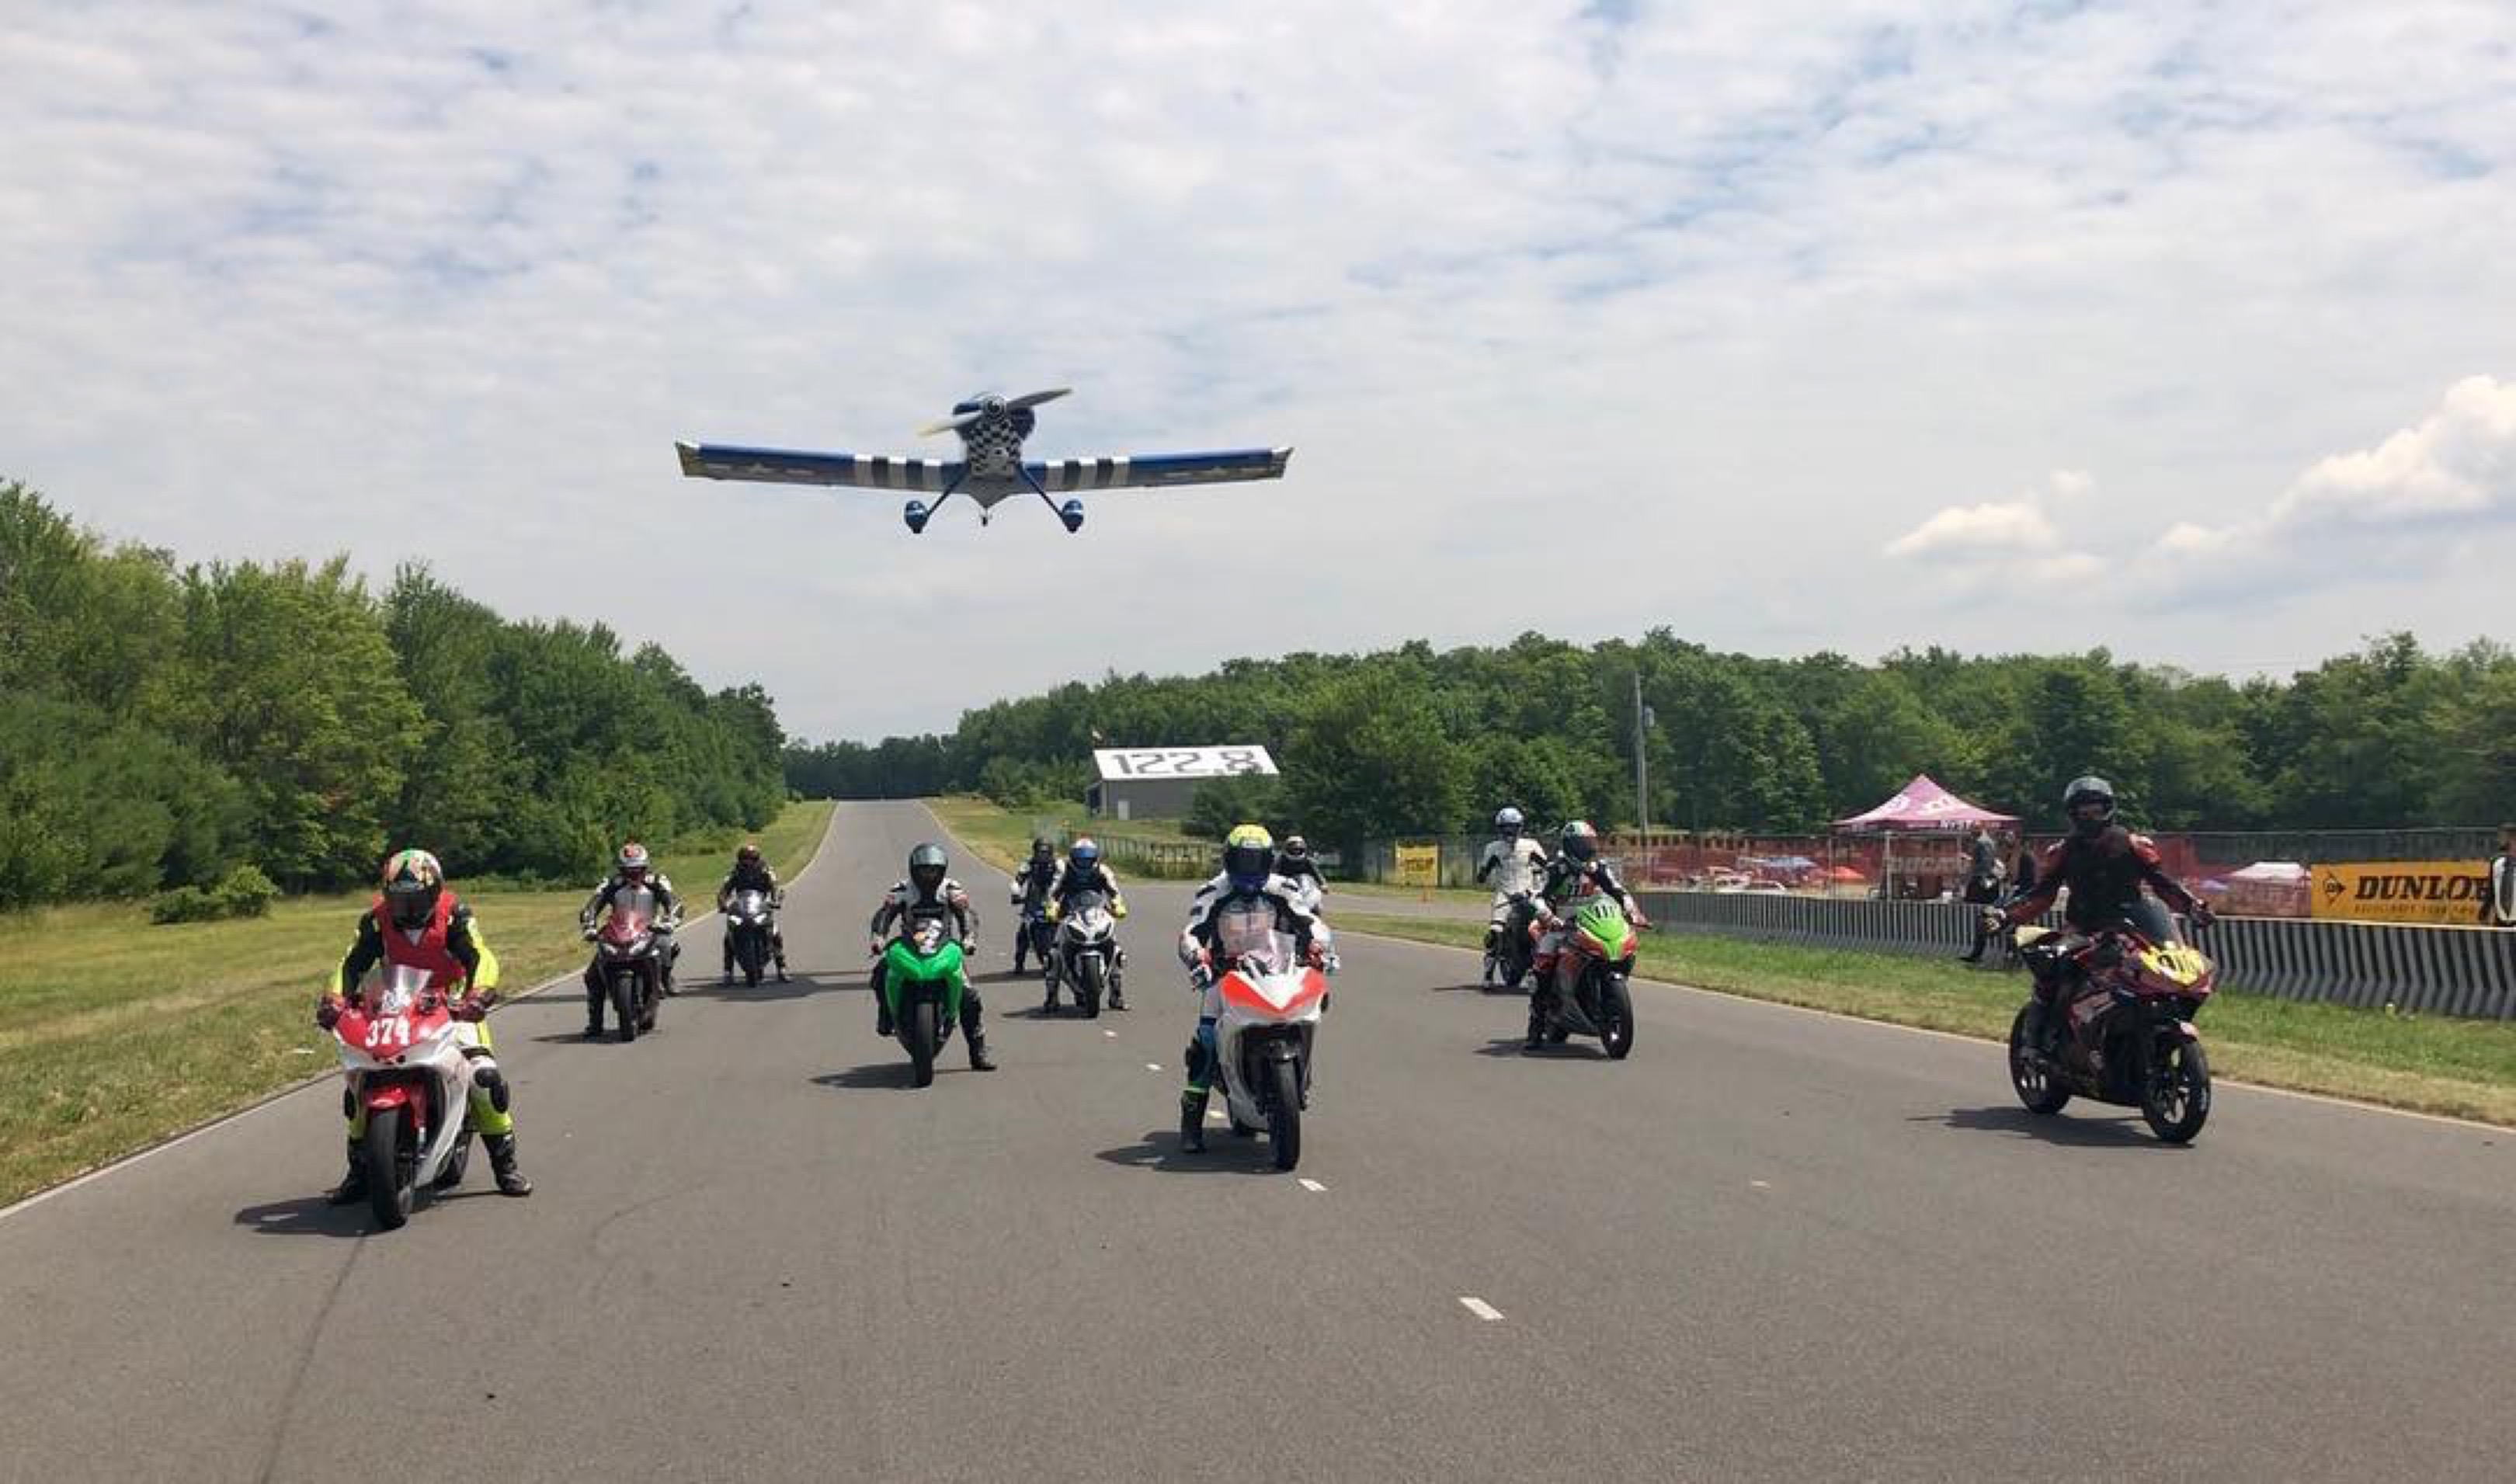 Were Having A Blast You Must Ride The New York Safety Track Kawasaki Ninja 300 Tarmac Full Exhaust System Carbon Fiber Motorcycle Racing And Trackdays At Nyst Series Races